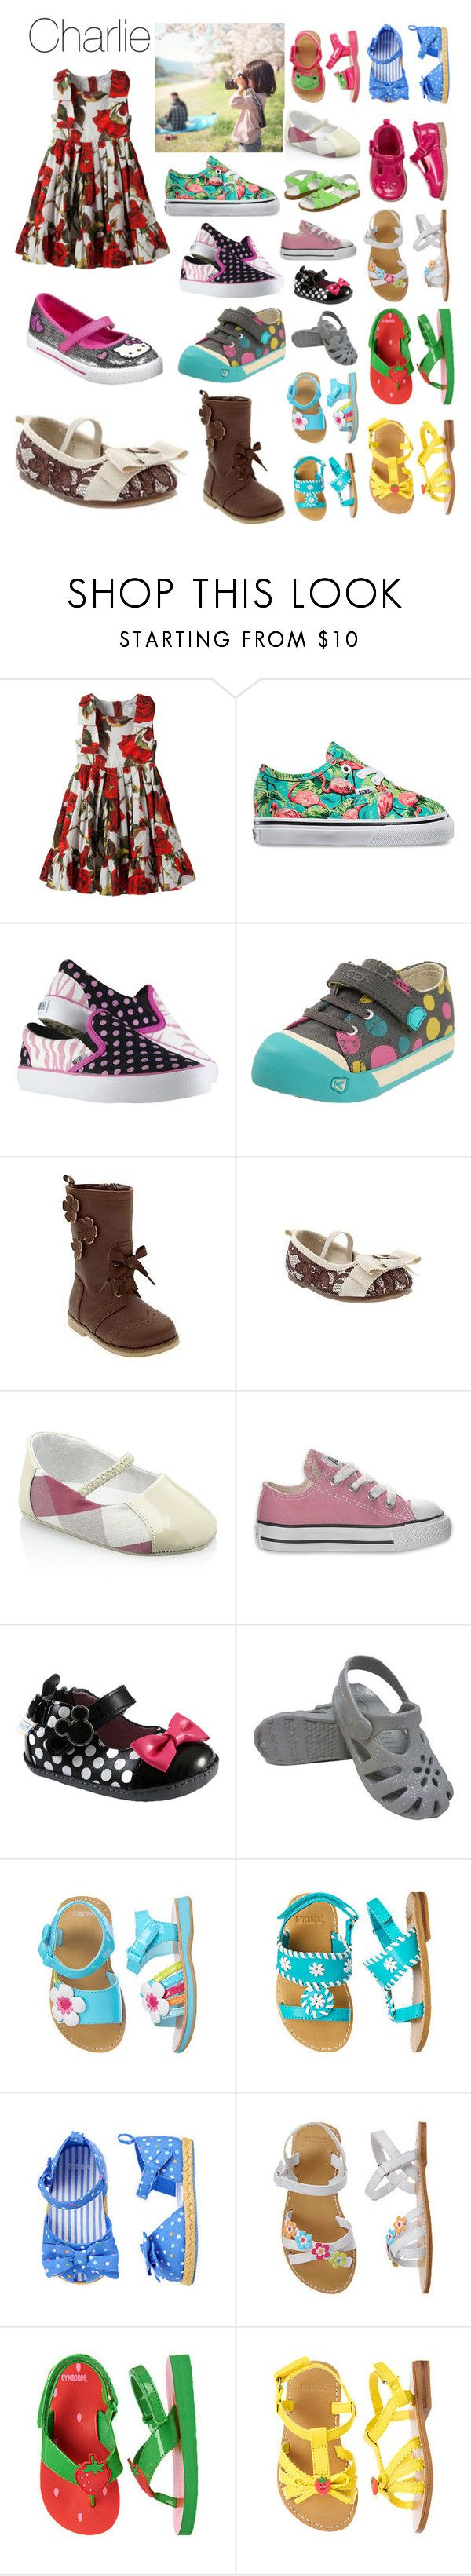 """""""Untitled #3683"""" by llamapoop ❤ liked on Polyvore featuring Dolce&Gabbana, Vans, Keen Footwear, Hello Kitty, Old Navy, Gymboree, Burberry, Converse and Disney"""